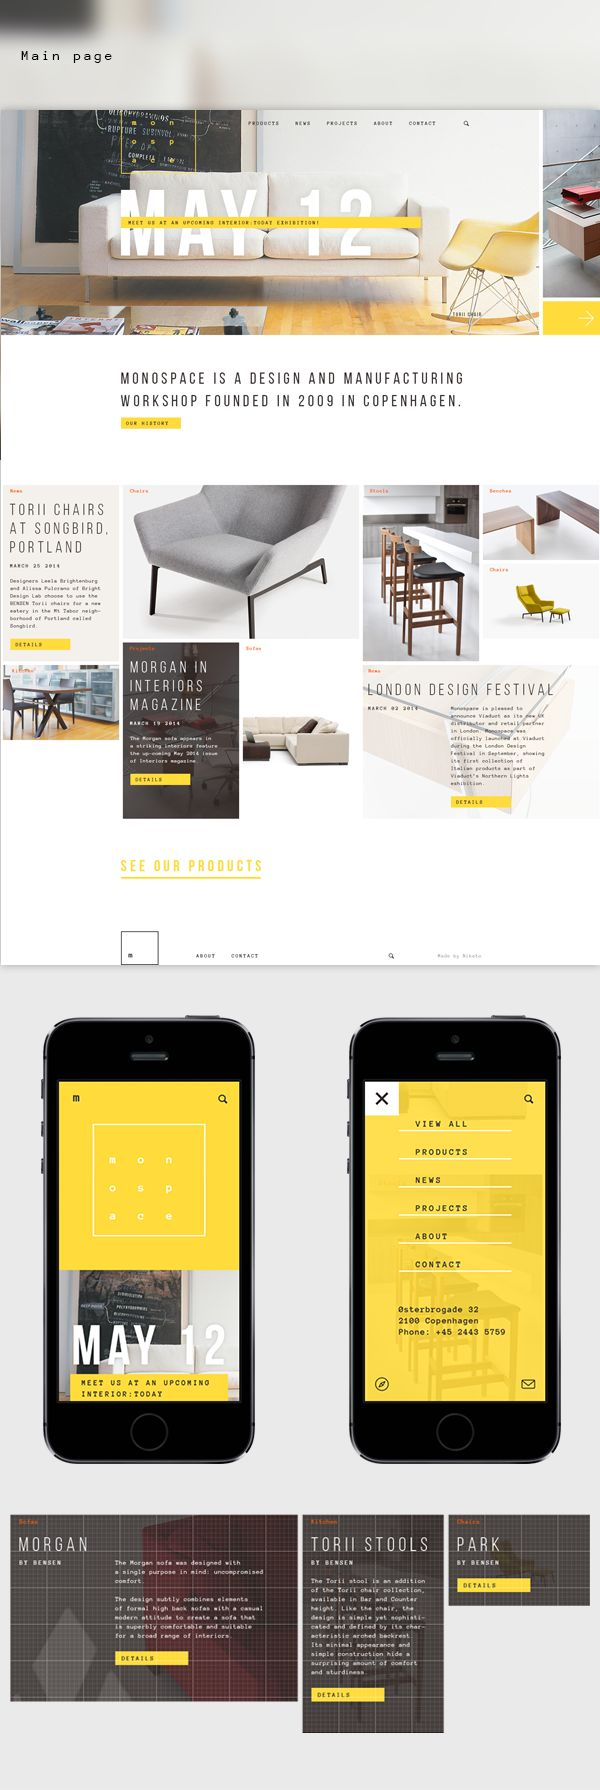 Identity and website concept for Monospace furniture workshop. All product images used for educational purposes only.